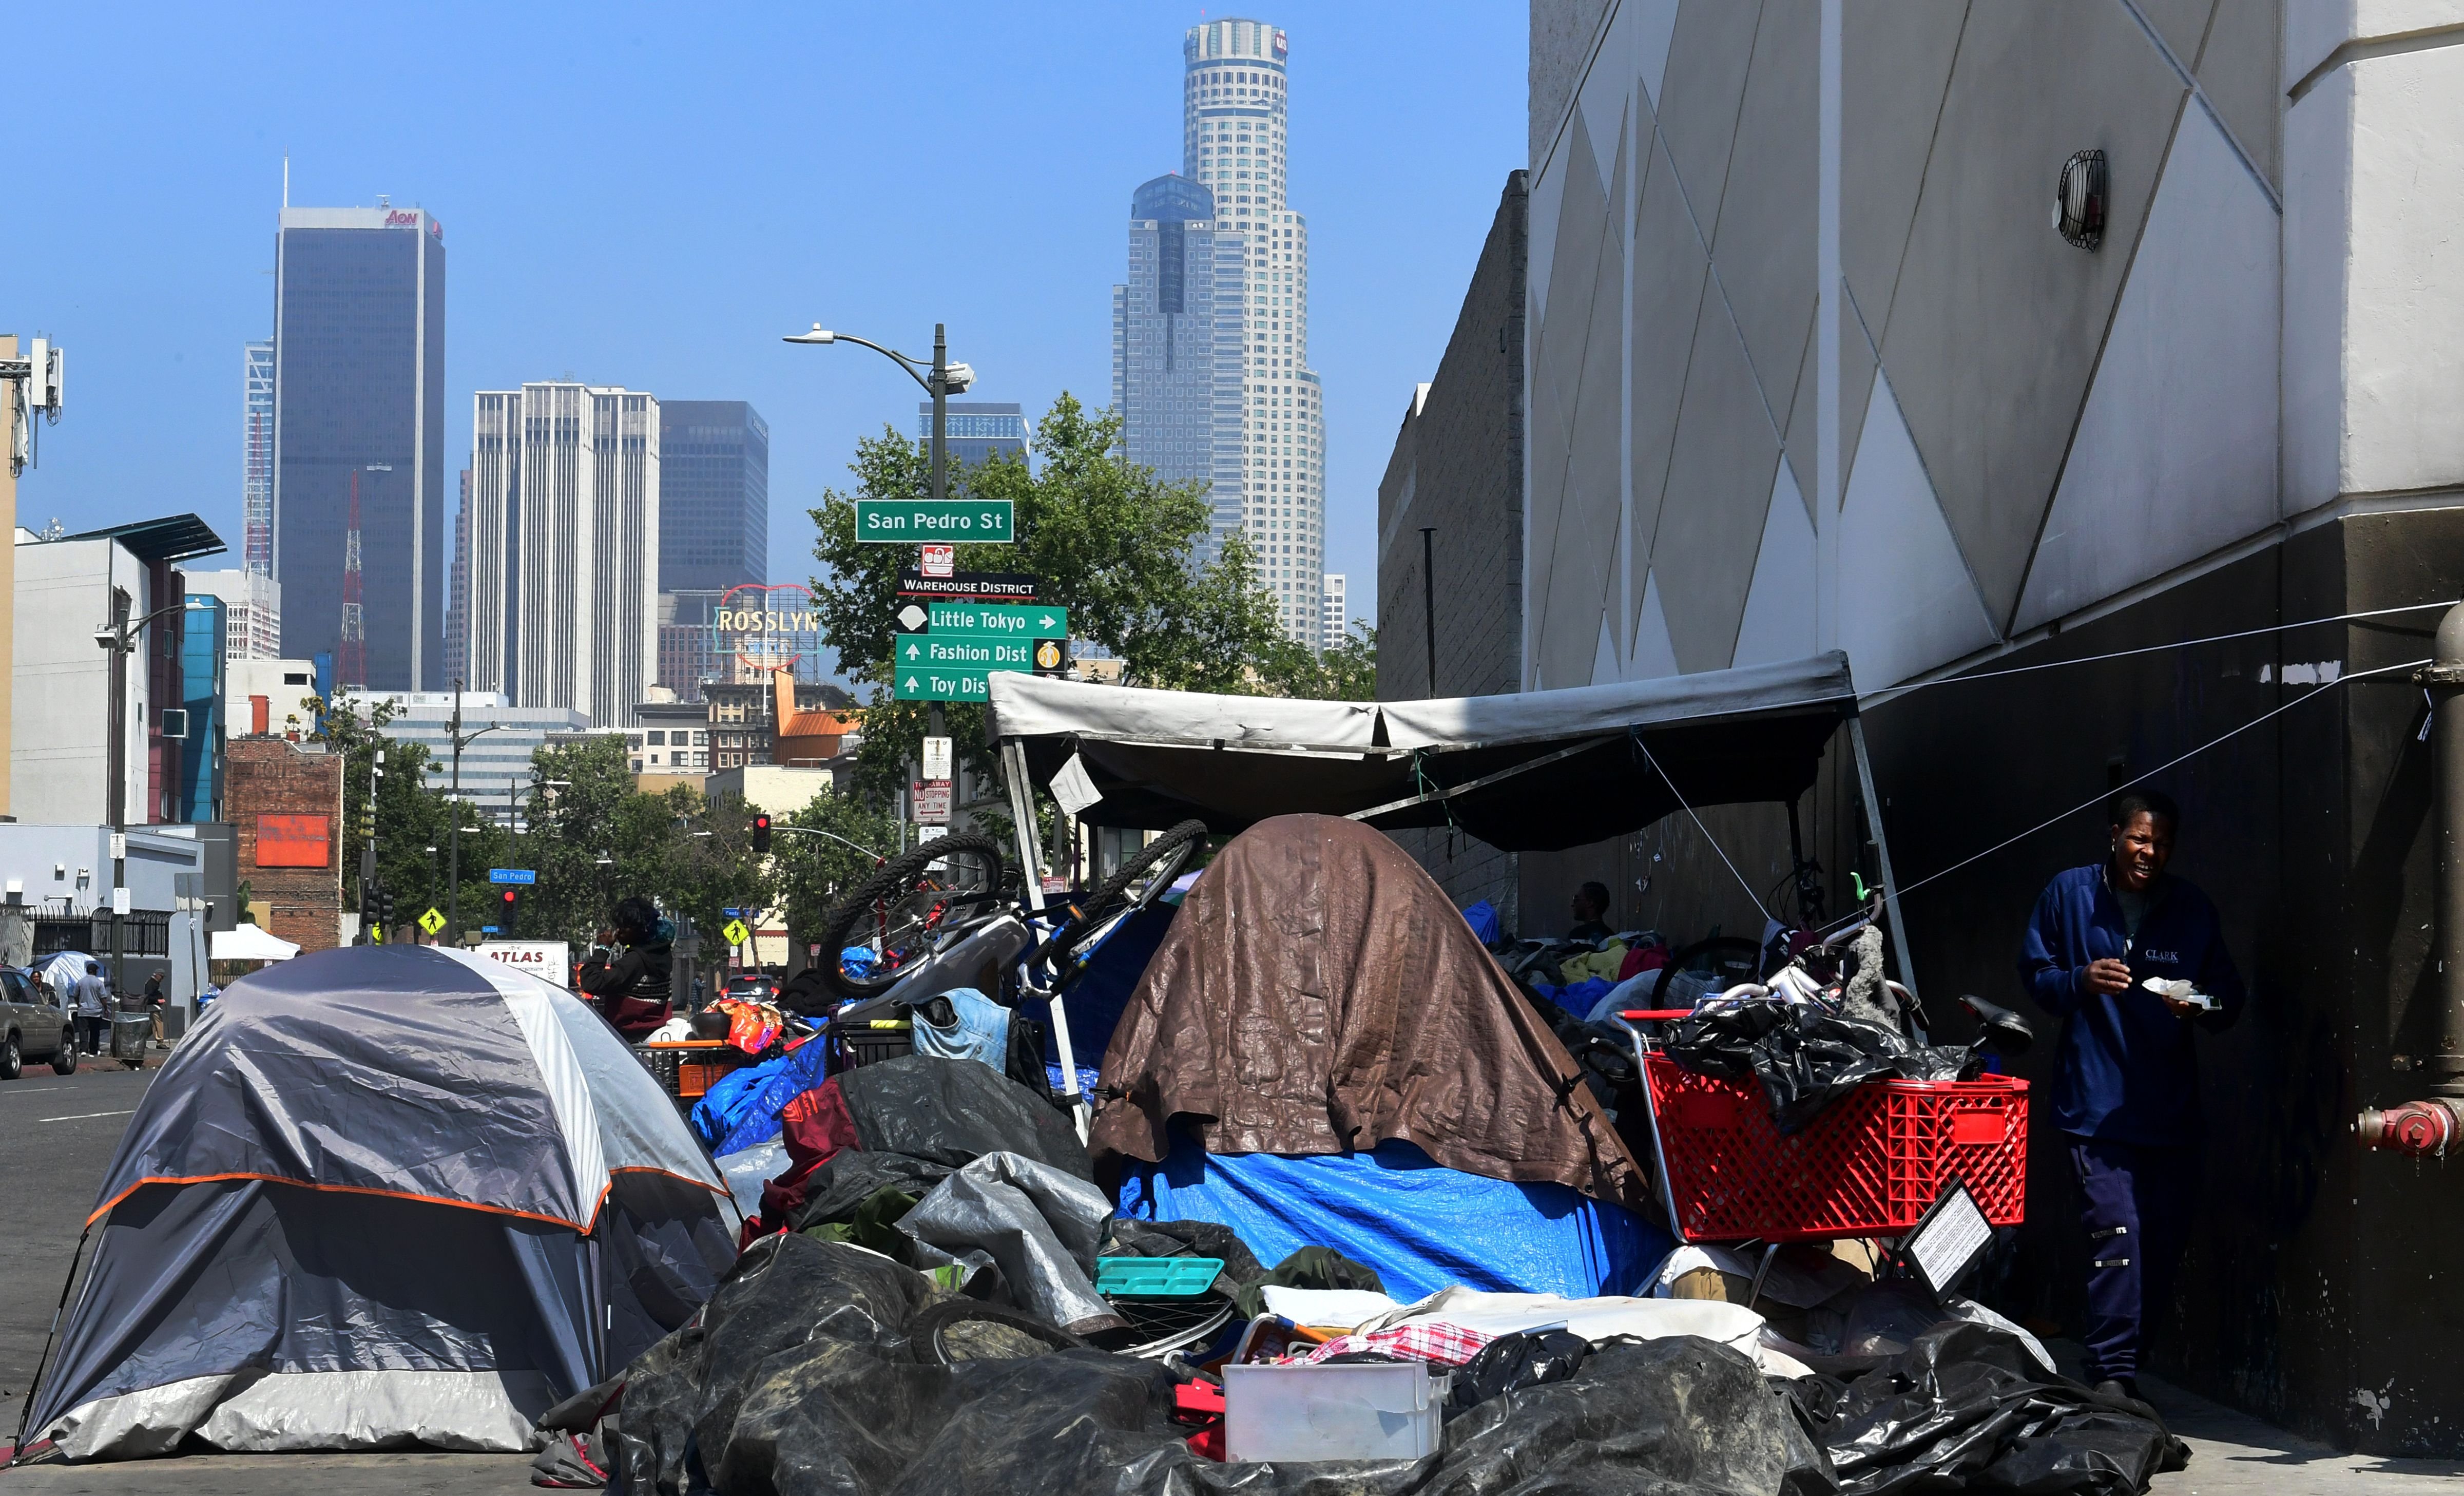 County inspectors cite dozens of Skid Row businesses for 'overflowing dumpsters,' 'rodent burrows'